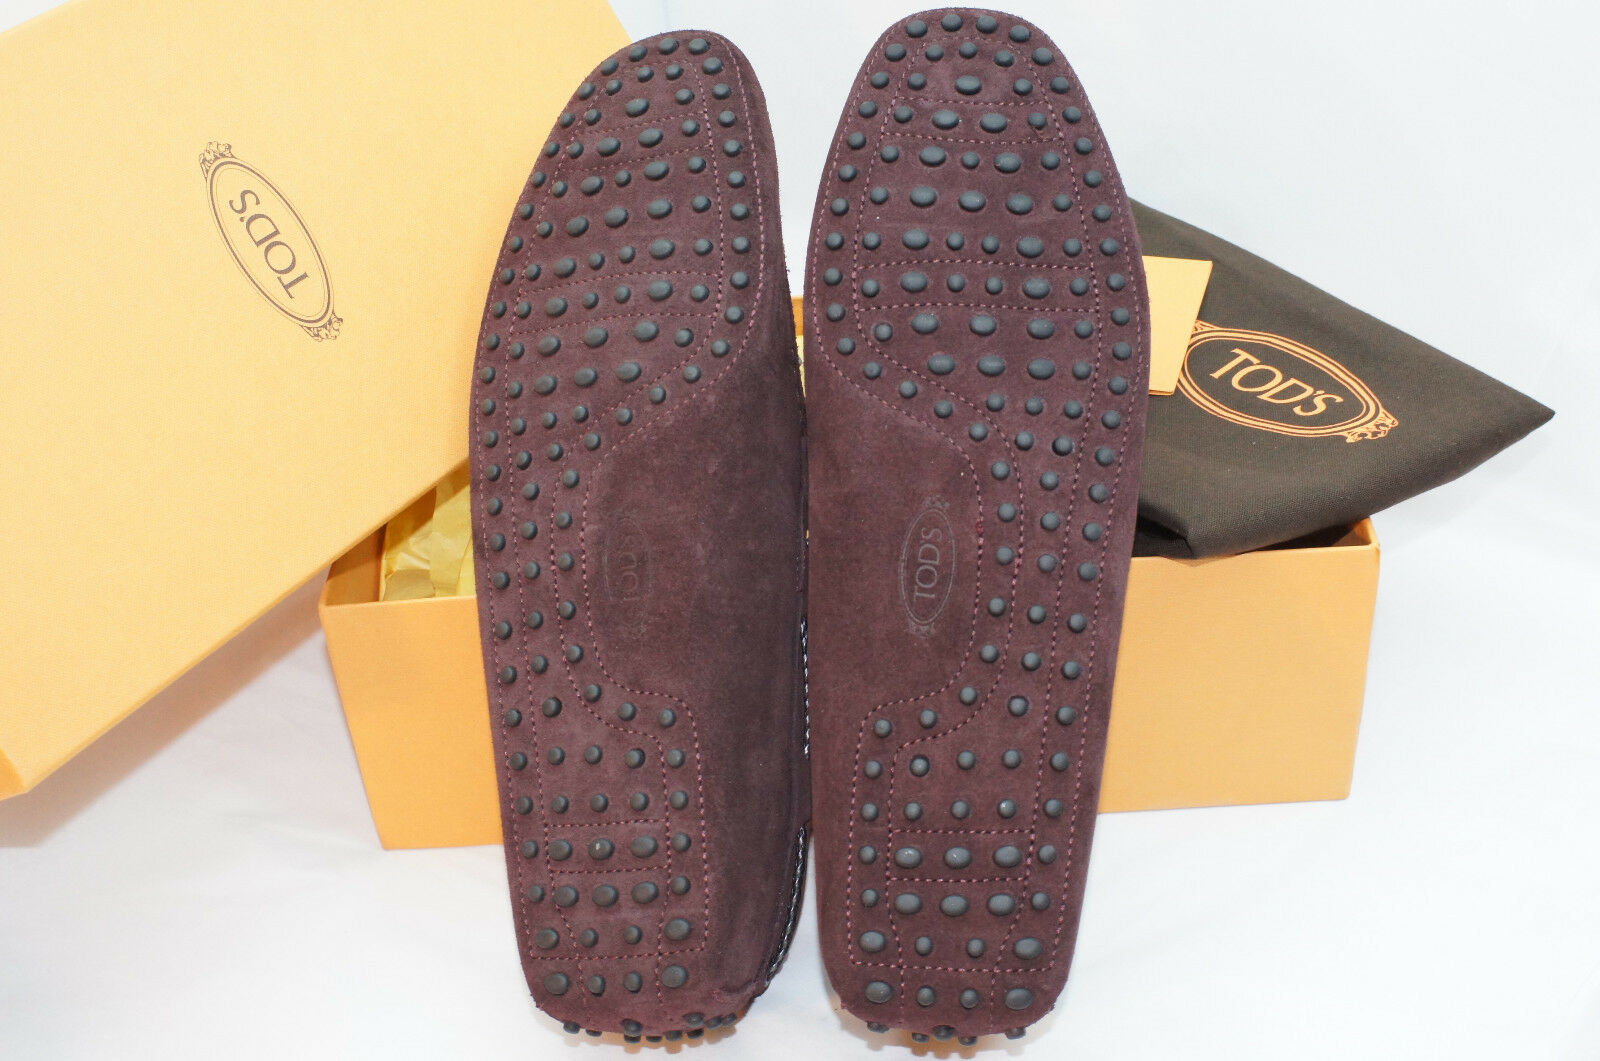 New Tod's Men's Men's Men's shoes Loafers Drivers Size 8 Laccetto Gommini Suede Sale Gift d93a01